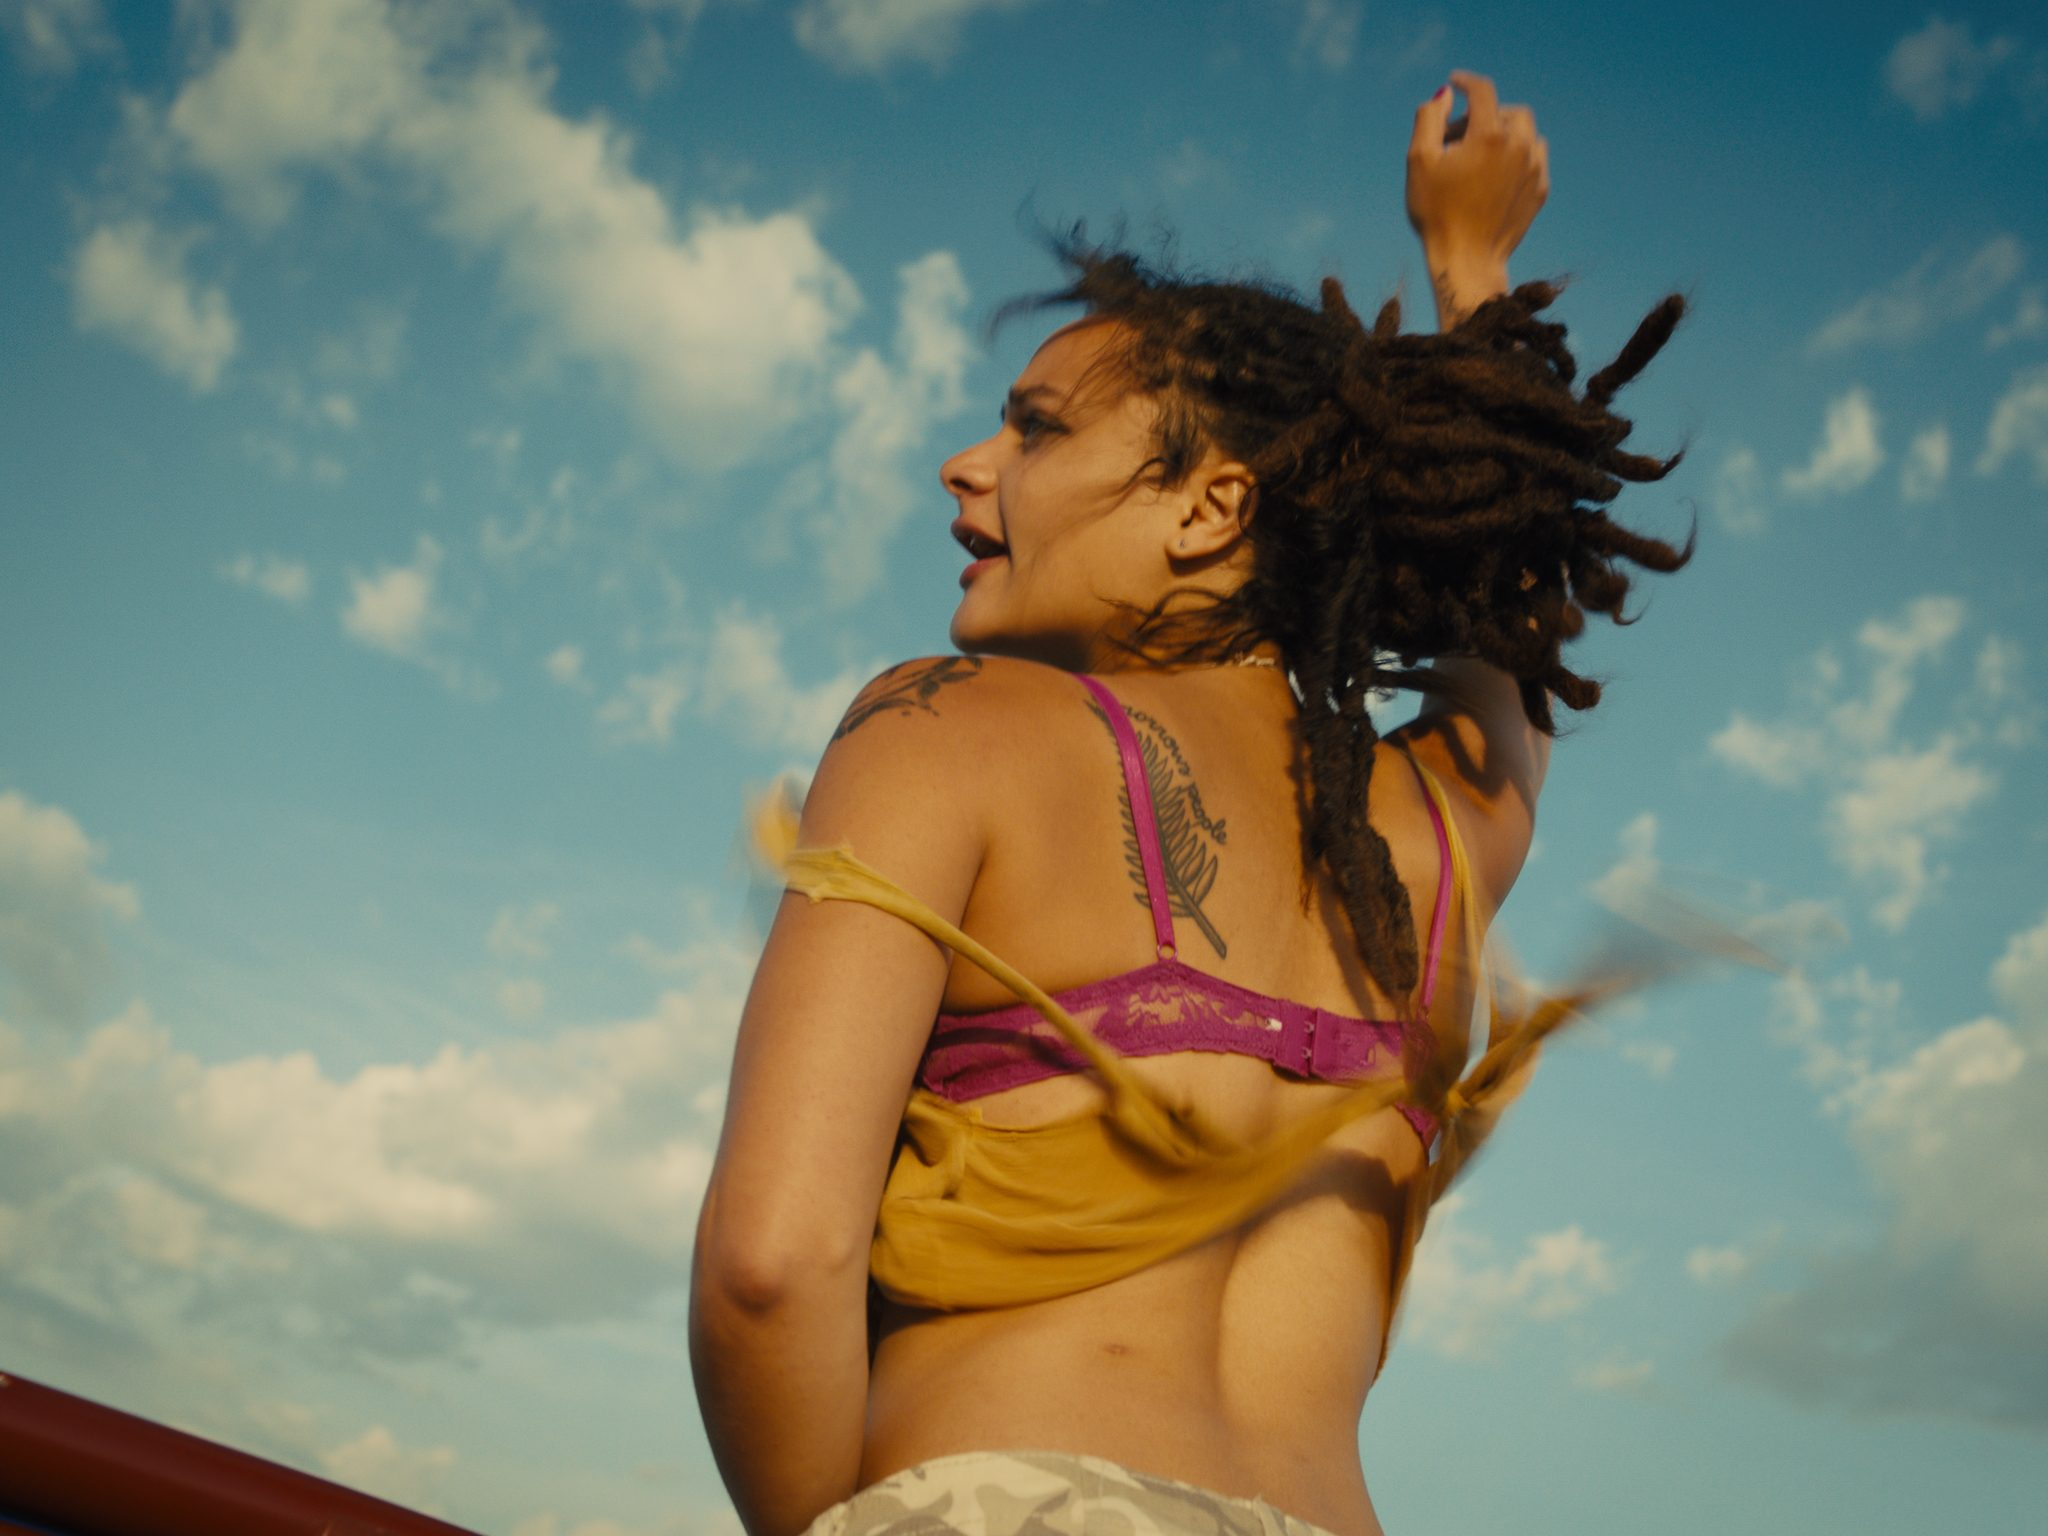 AMERICAN HONEY HD (c) Parts & Labor LLCPulse Films LimitedThe British Film InstituteChannel Four Television Corporation 2016